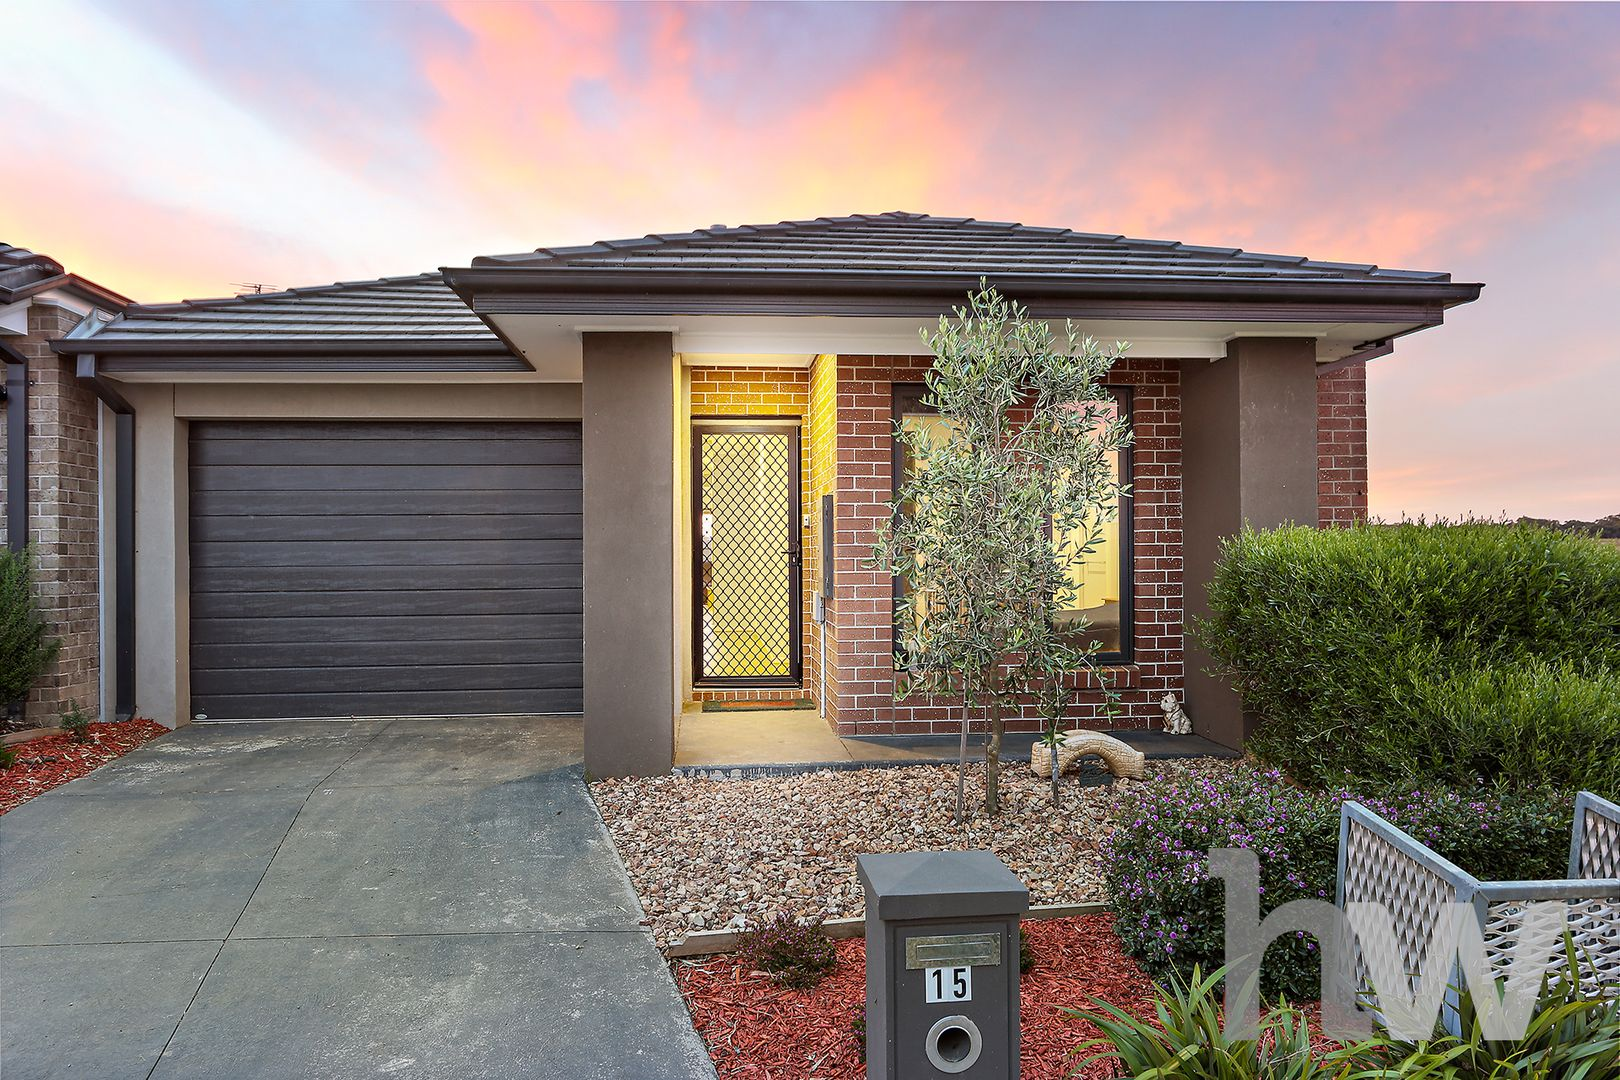 15 Mckinley Avenue, Armstrong Creek VIC 3217, Image 0